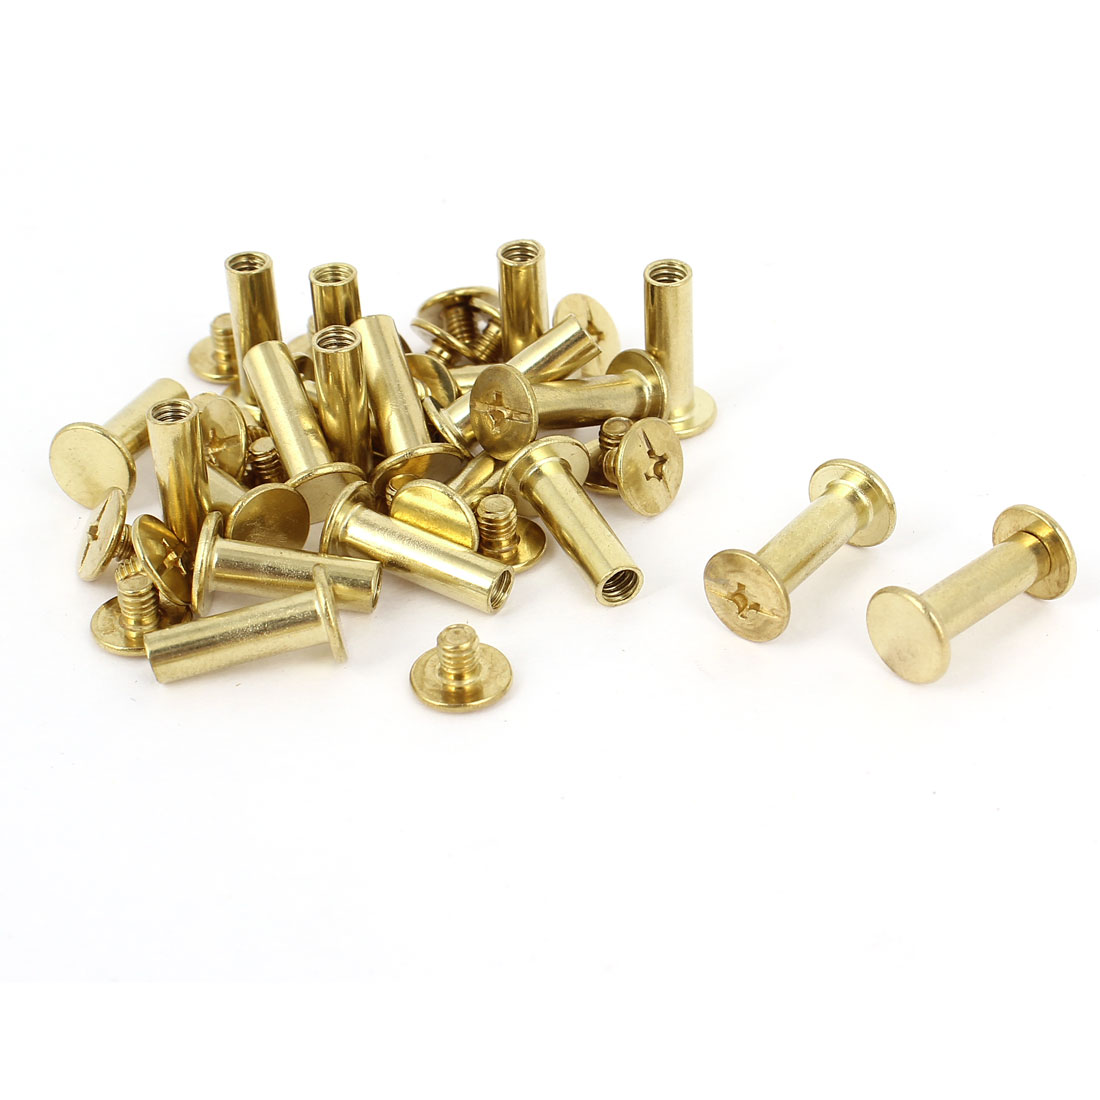 5mmx15mm Brass Plated Binding Chicago Screw Post 20pcs for Leather Purse Belt